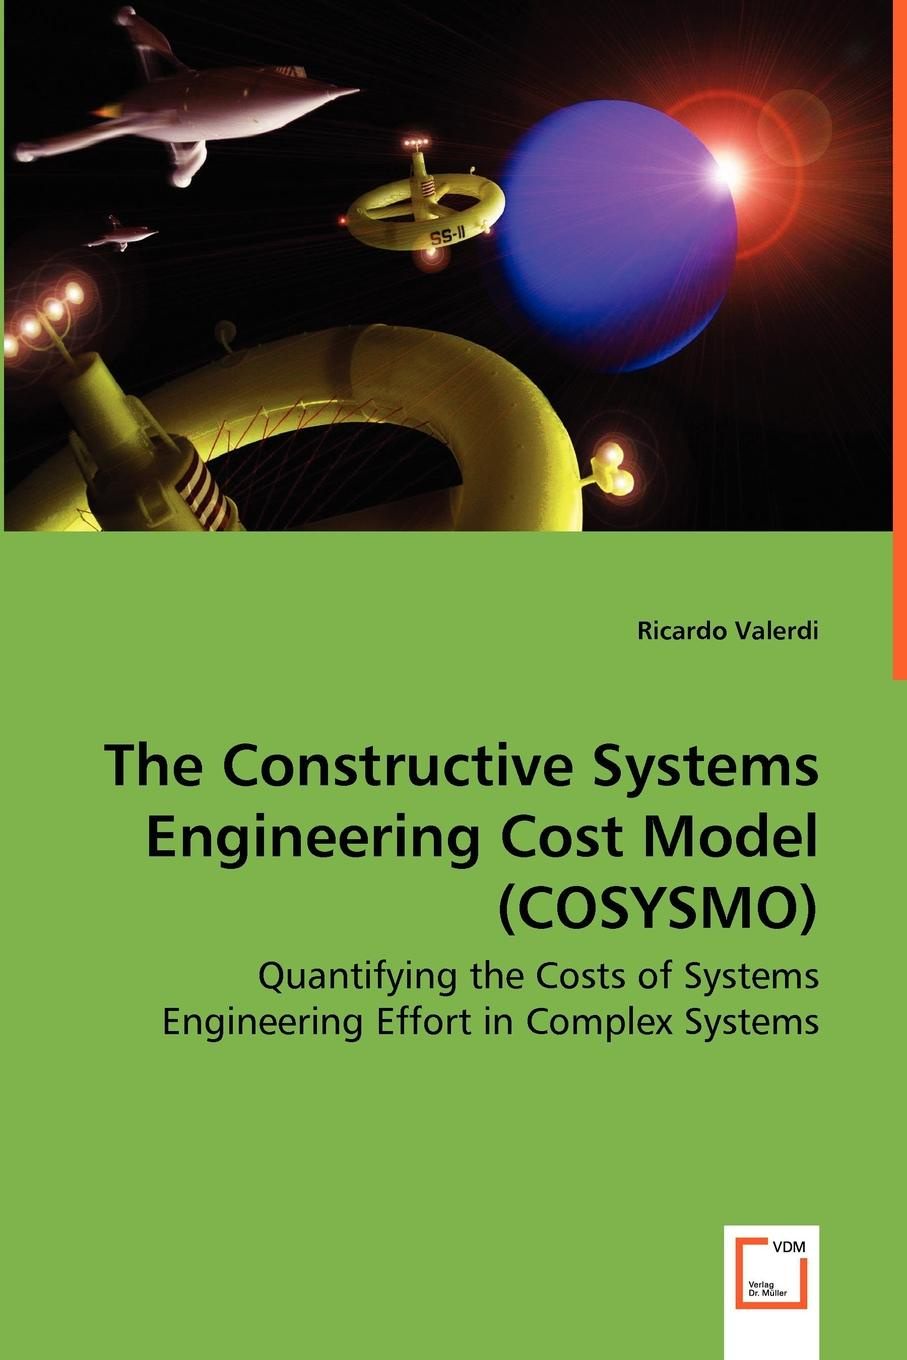 Ricardo Valerdi The Constructive Systems Engineering Cost Model (COSYSMO) - Quantifying the Costs of Systems Engineering Effort in Complex Systems murugan ramalingam biomimetics advancing nanobiomaterials and tissue engineering